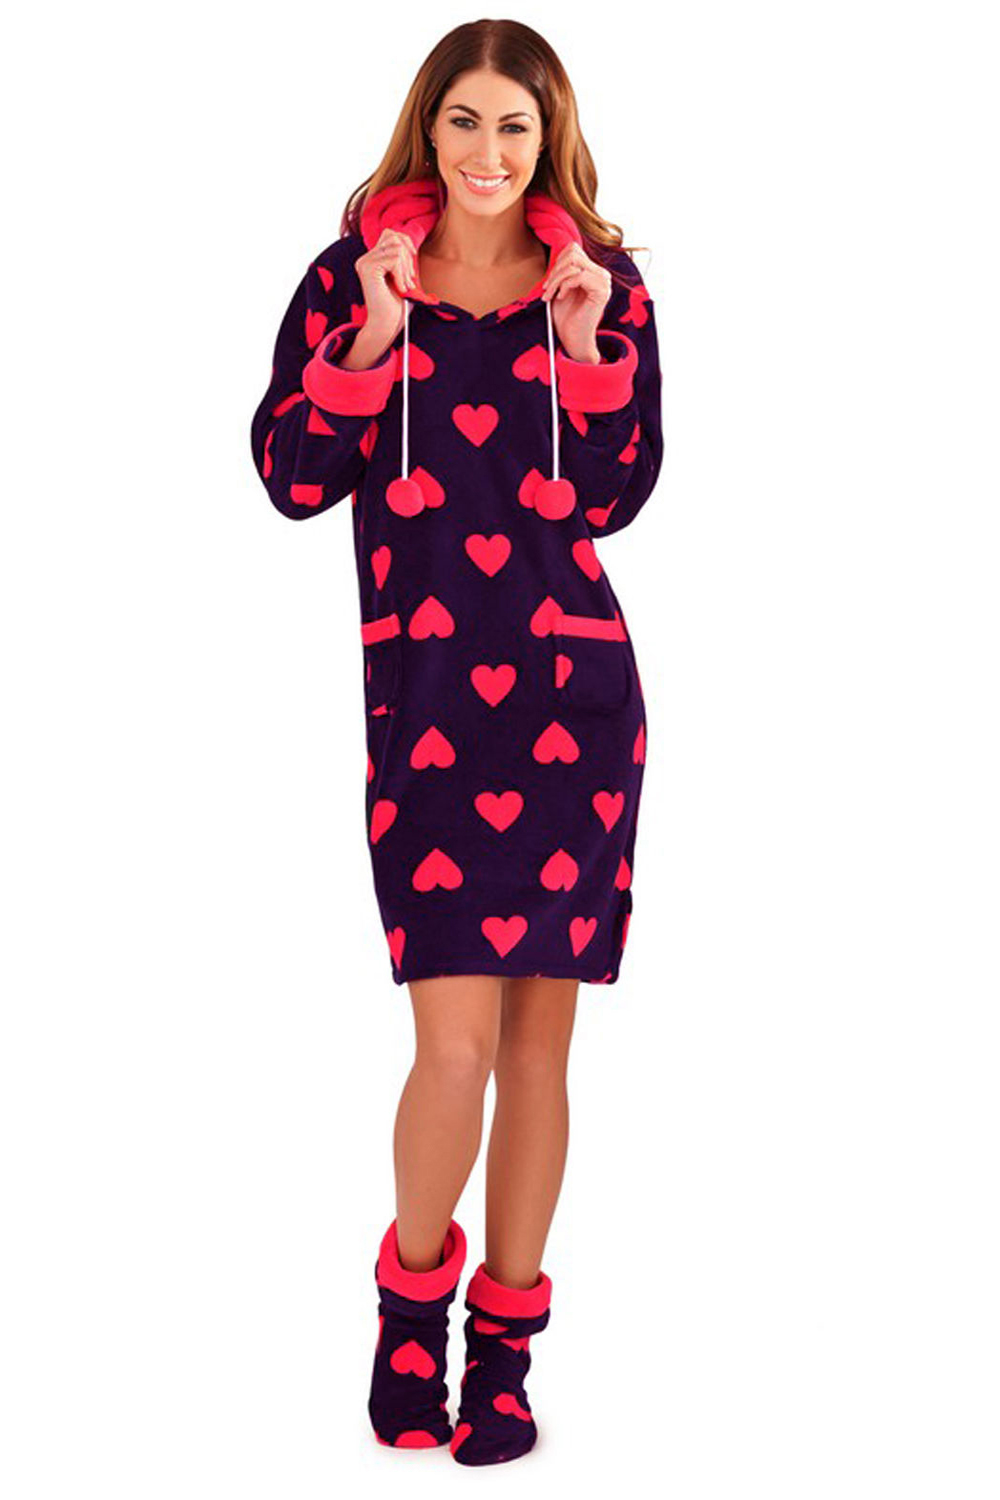 Loungeable Womens Heart Print Robes Or Fleece Nightdress Hooded ...